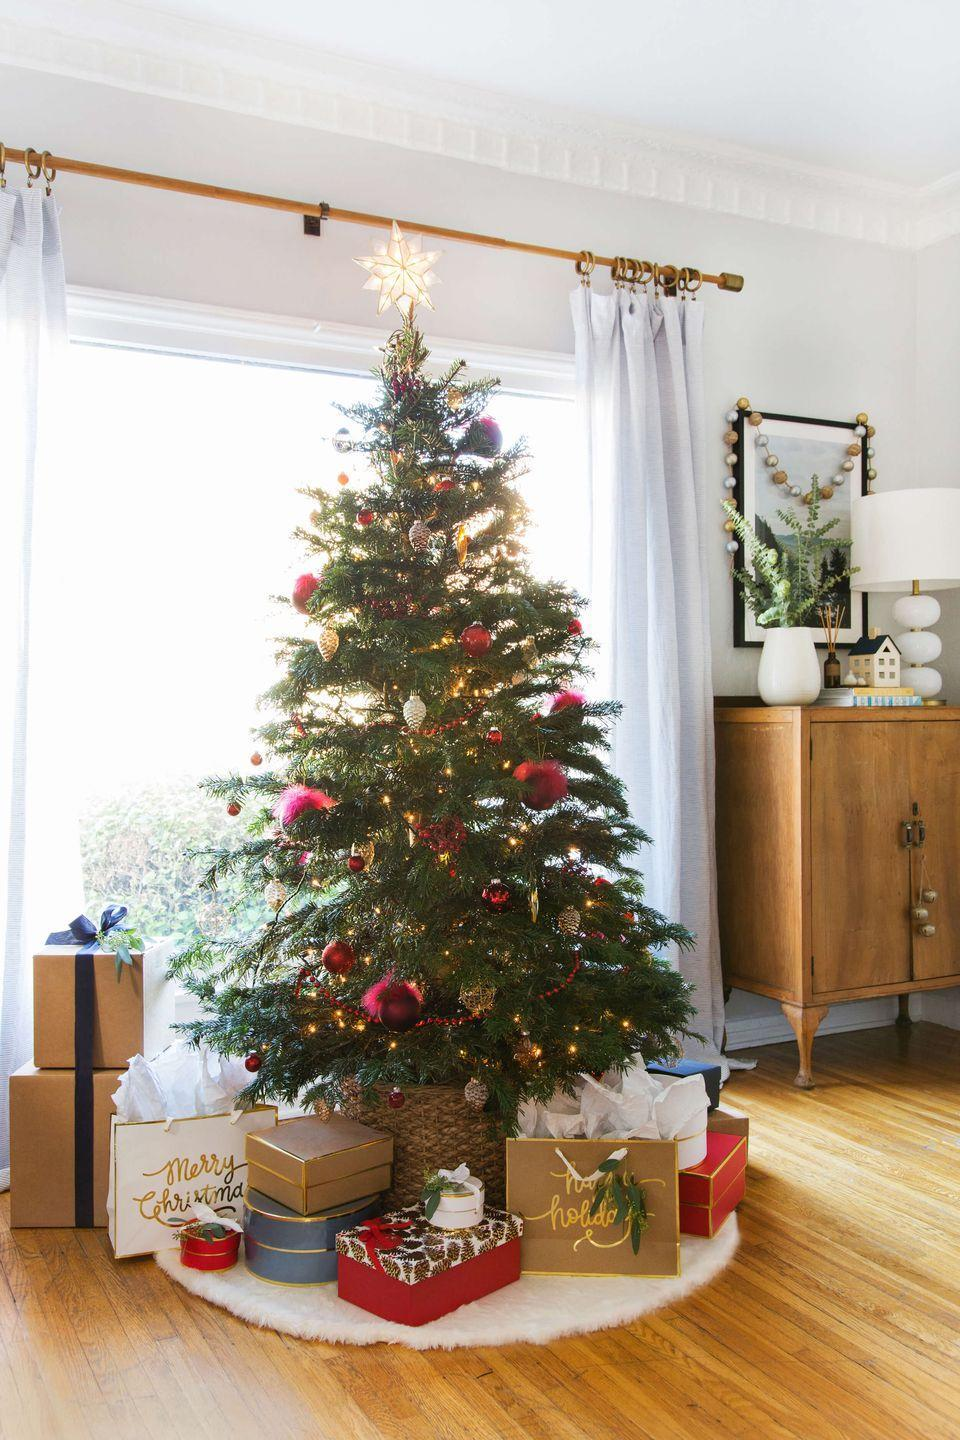 "<p>If you place your tree in front of a window, you'll be able to see it from the outside, too. Everybody wins!</p><p>See more at <a href=""https://stylebyemilyhenderson.com/blog/home-ginny-christmas"" rel=""nofollow noopener"" target=""_blank"" data-ylk=""slk:Emily Henderson"" class=""link rapid-noclick-resp"">Emily Henderson</a>.</p><p><a class=""link rapid-noclick-resp"" href=""https://www.amazon.com/Ornativity-Silver-Glitter-Design-Topper/dp/B07QDPDQRJ/ref=sr_1_1?crid=1DAICT9D376QL&dchild=1&keywords=star+christmas+tree+topper&qid=1596759876&s=home-garden&sprefix=star+christmas+tree%2Cgarden%2C173&sr=1-1&tag=syn-yahoo-20&ascsubtag=%5Bartid%7C10057.g.505%5Bsrc%7Cyahoo-us"" rel=""nofollow noopener"" target=""_blank"" data-ylk=""slk:SHOP TREE TOPPERS"">SHOP TREE TOPPERS</a> <strong><em>Star Tree Topper, $10</em></strong></p>"